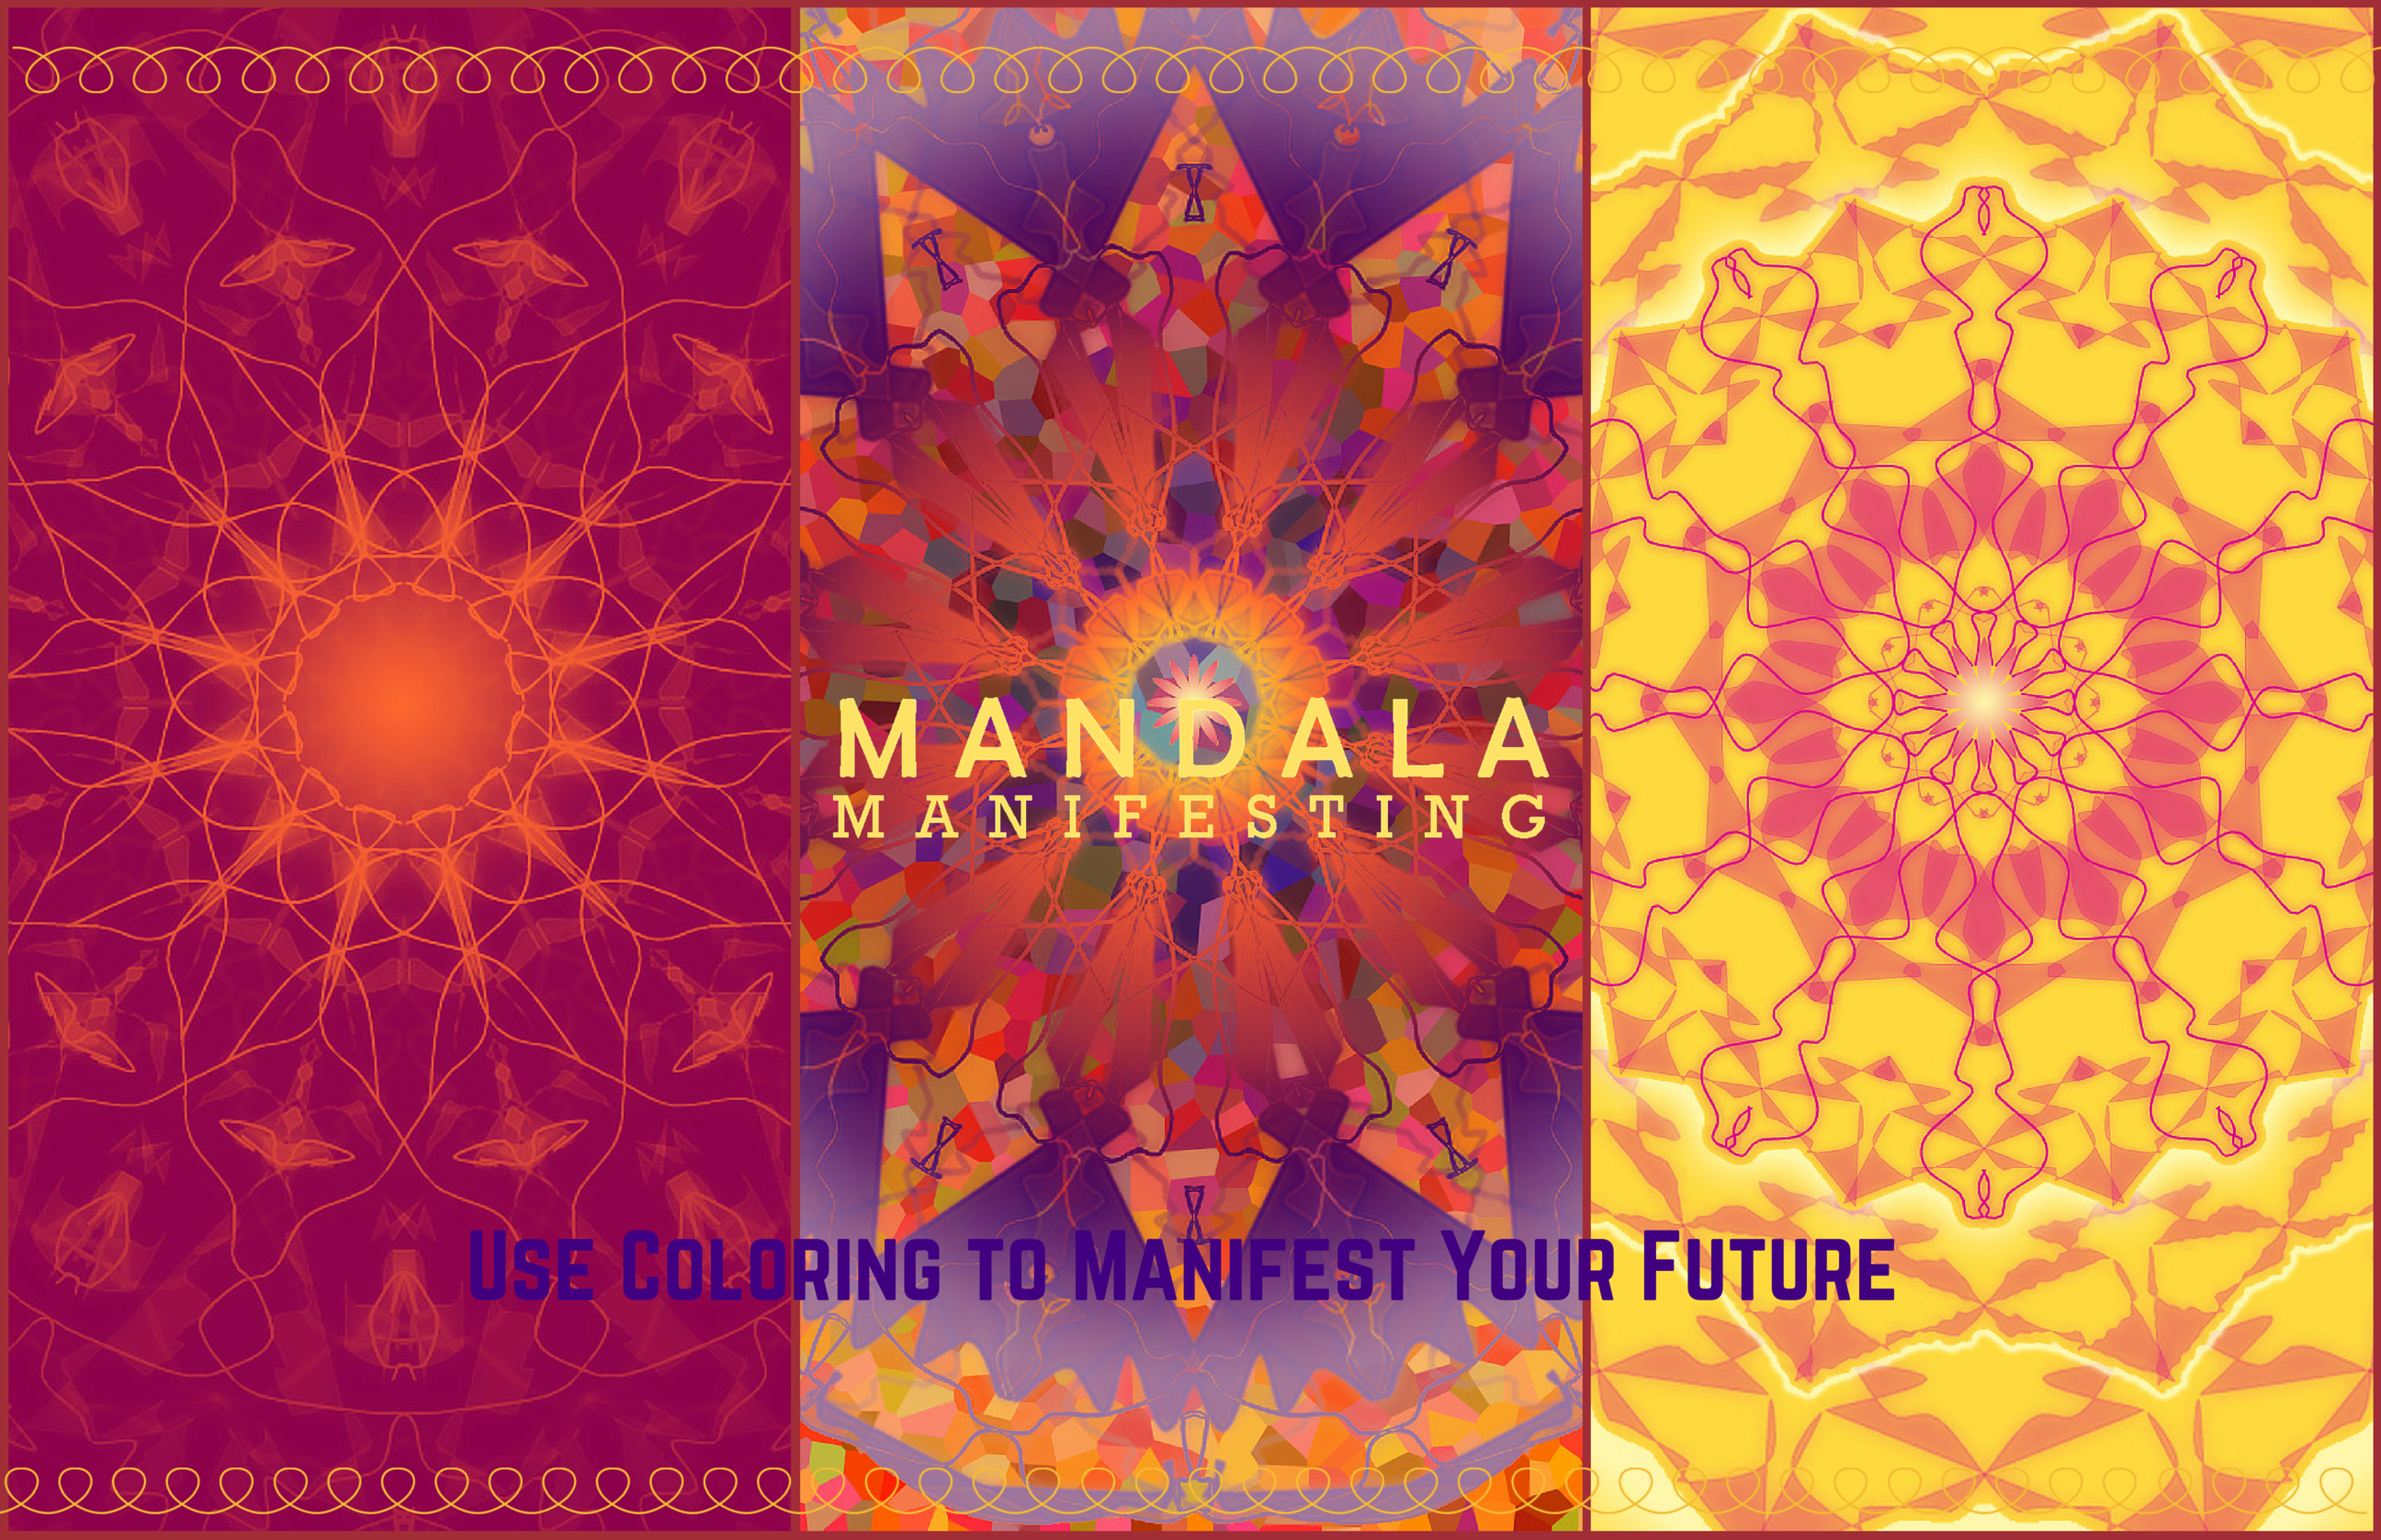 GETTING A SECOND CHANCE AT HAPPINESS Inspiration for returning to the living after having suffered any type of loss can be a challenge. Everyone wants you to be happy. But what does that mean now that you have been through hell? Manifesting Mandala is for more than just picking up the pieces. It is for designing a life that fulfills you.